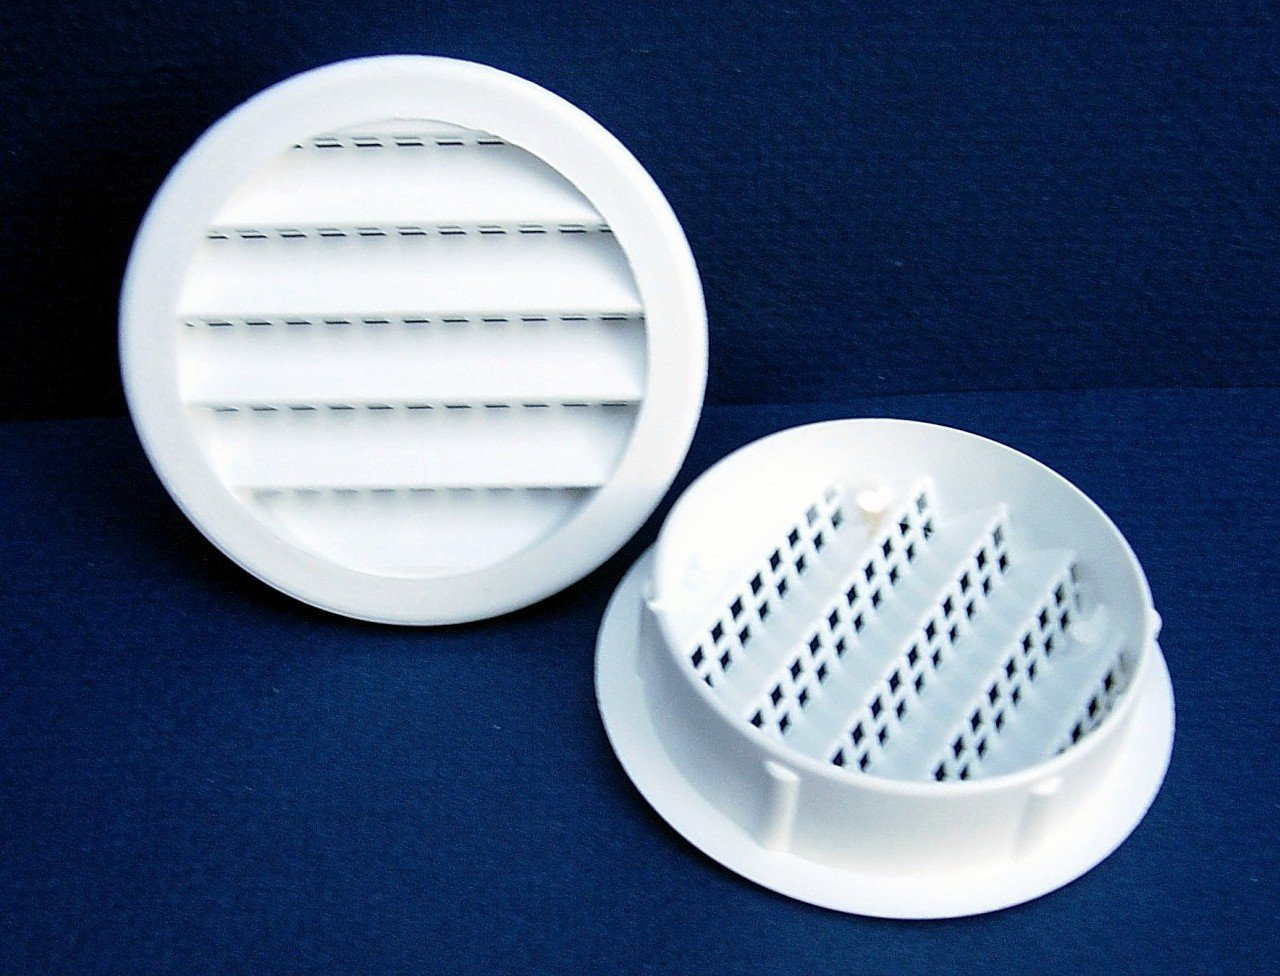 Maurice Franklin Louver-2'' Round White Polypropylene Plastic Louver with Insect Screen System, 6 Count per Pack, Sold as 3 Pack, 18 Count Total. #2'' PLW-100 by Maurice Franklin Louver